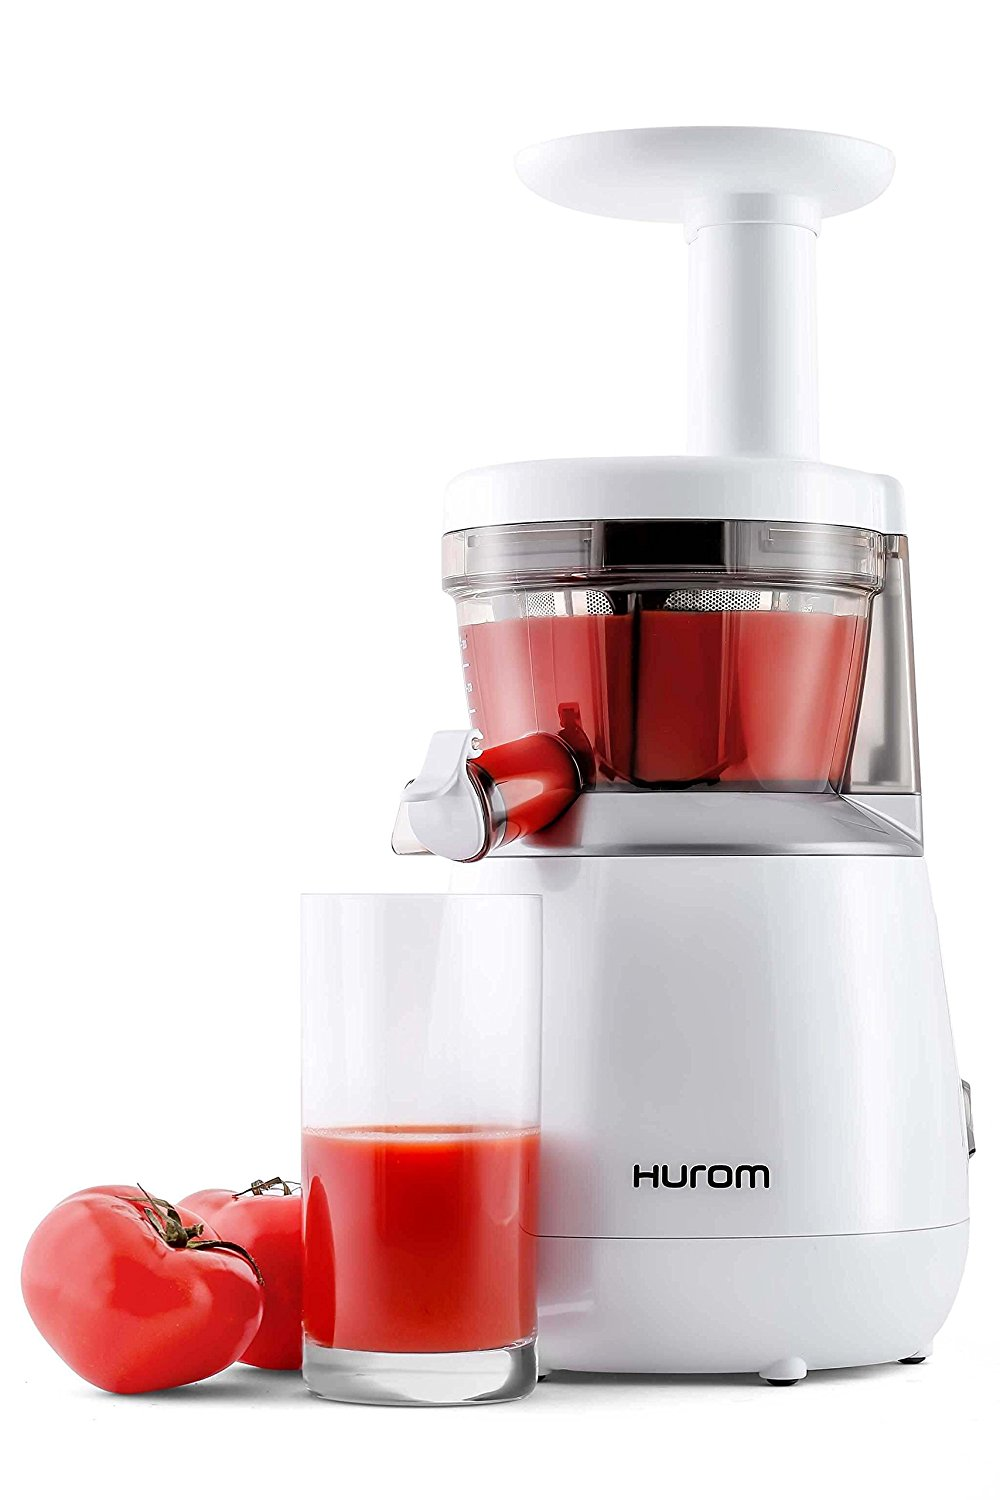 Best hurom juicer the blender experts ccuart Gallery